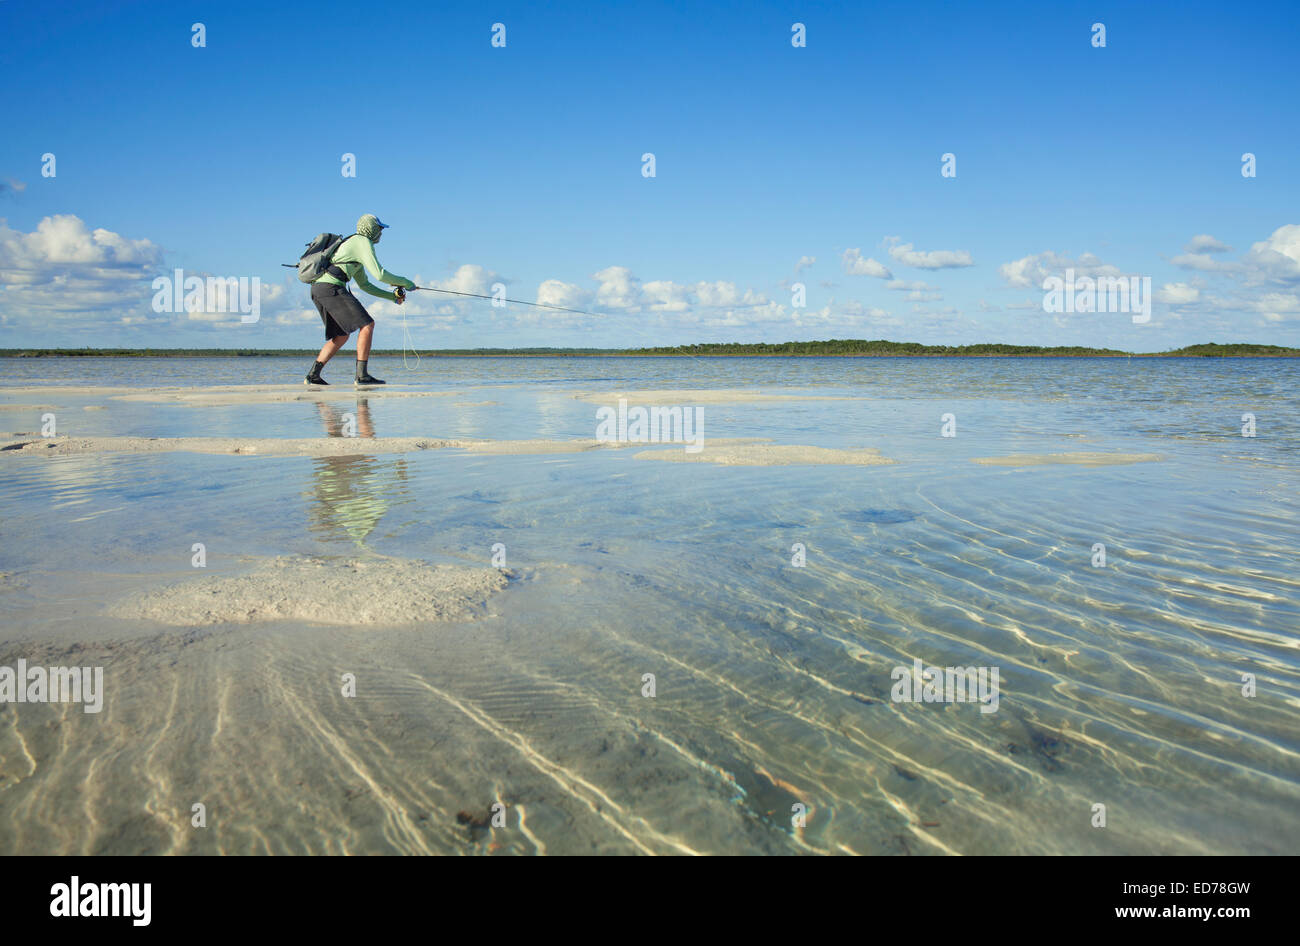 Saltwater fly fishing for bonefish on the island of Abaco in the Bahamas - Stock Image